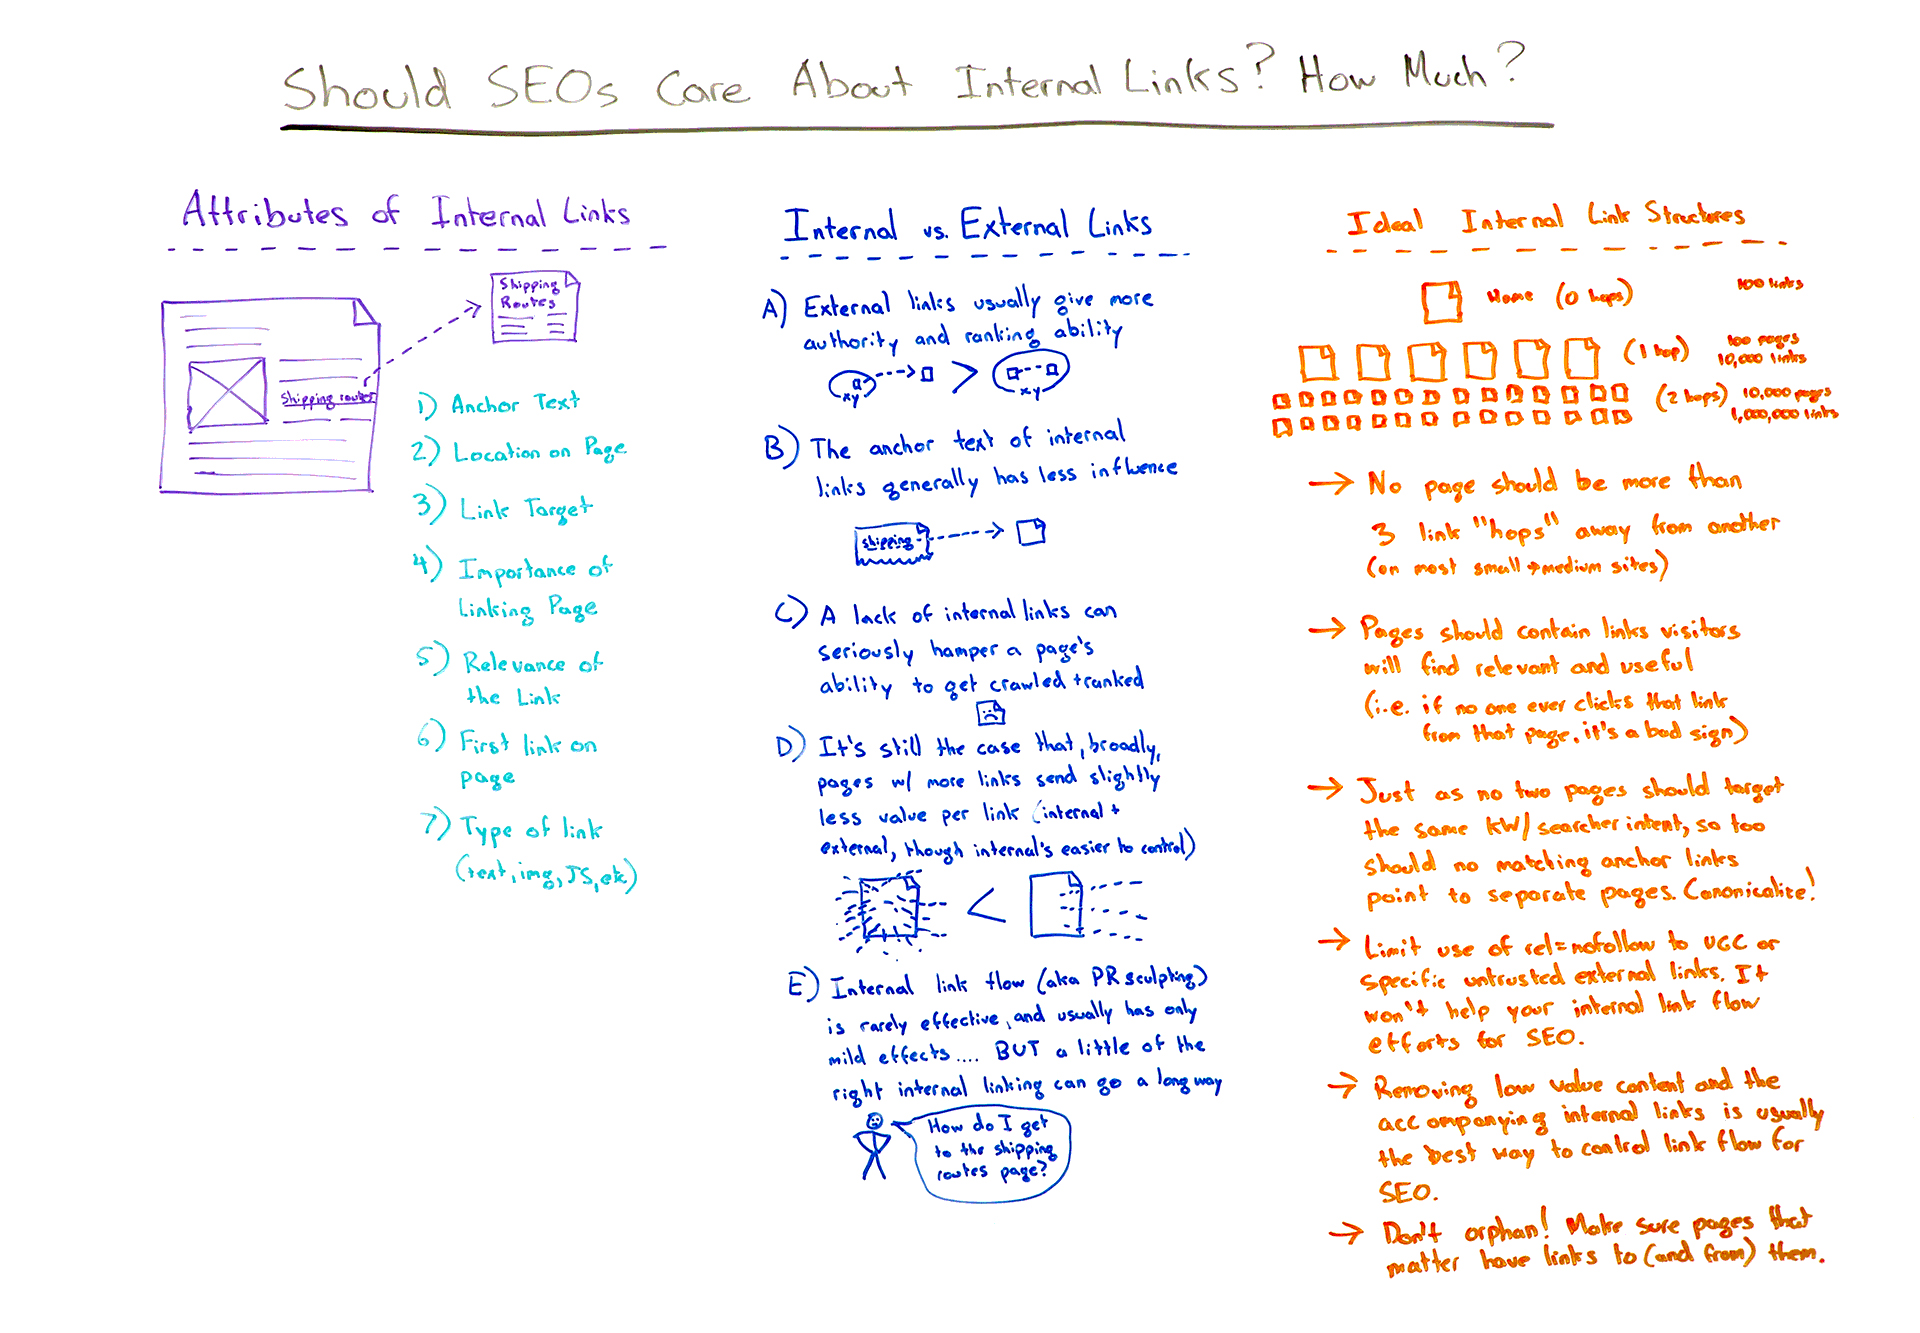 Should SEOs Care About Internl Links?